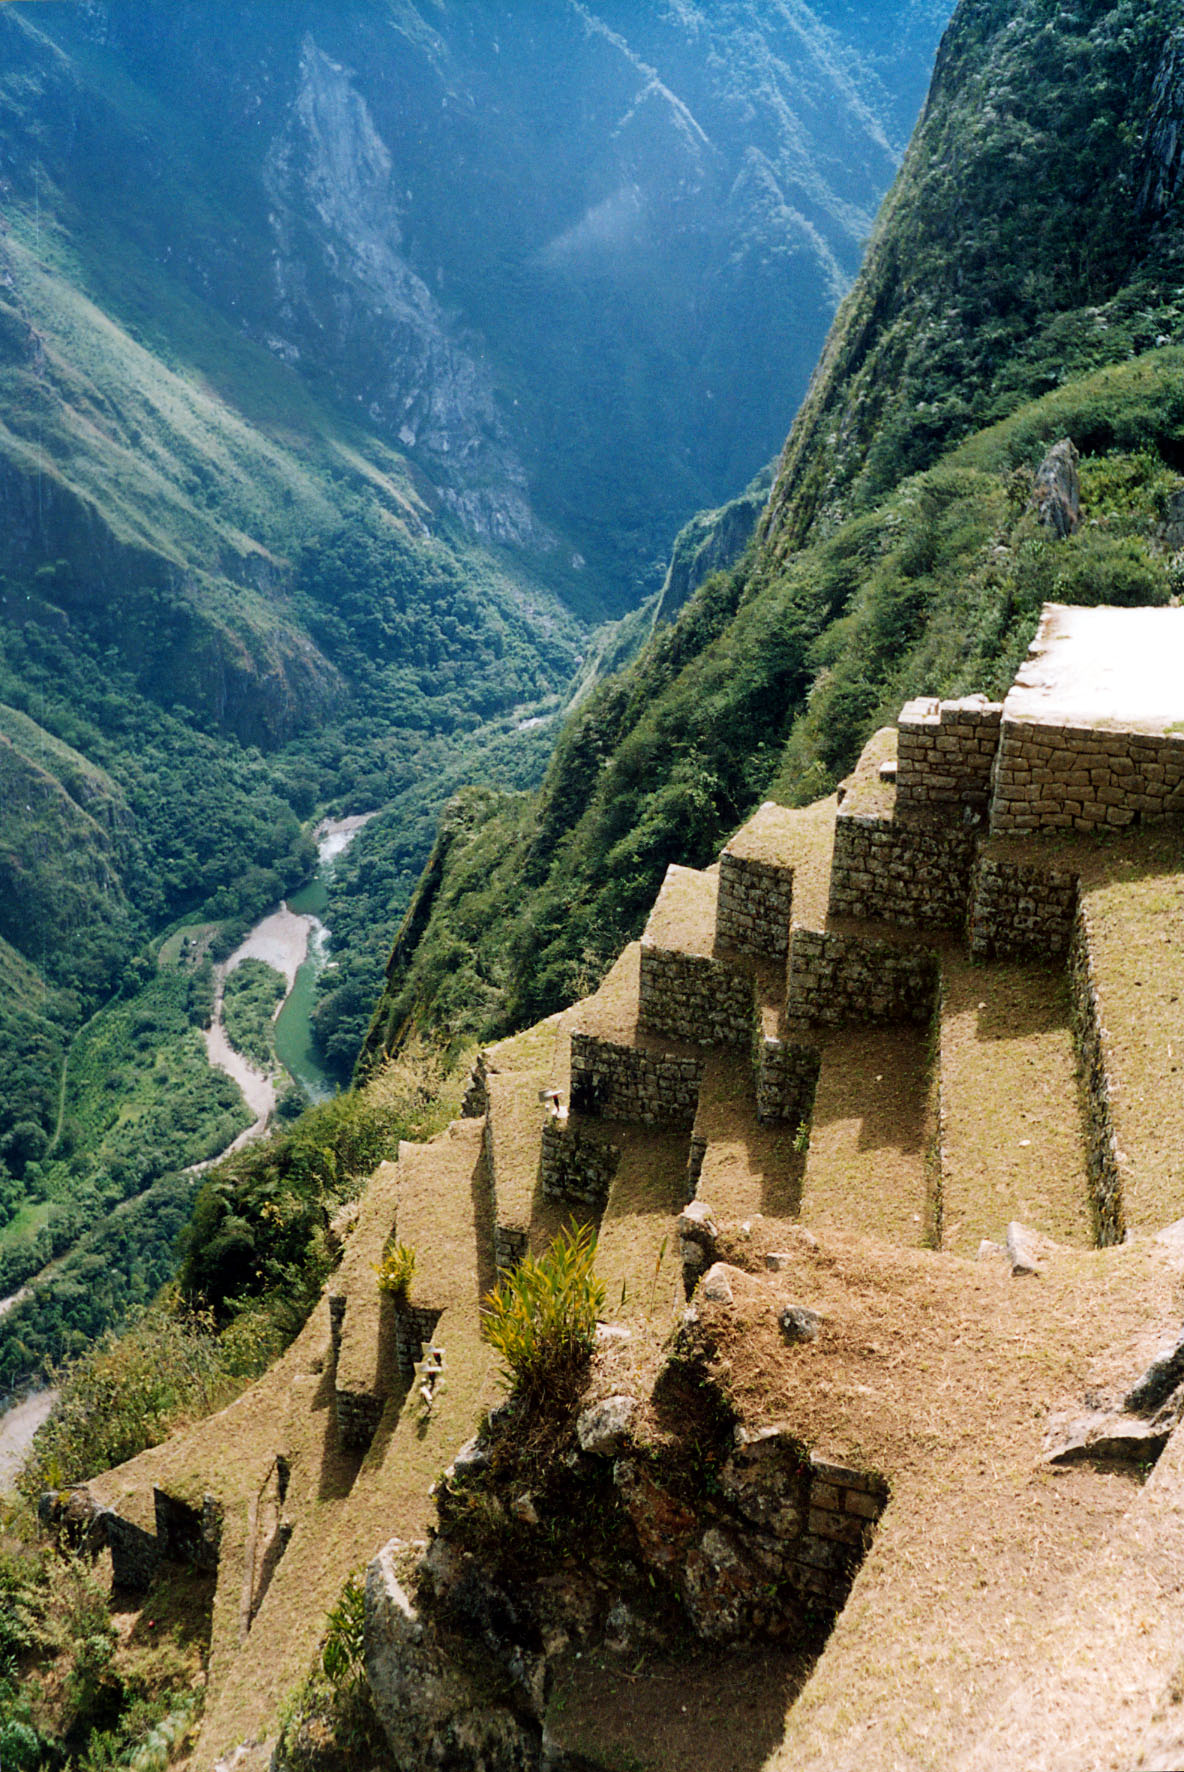 Description Machu Picchu Urubamba river.jpg